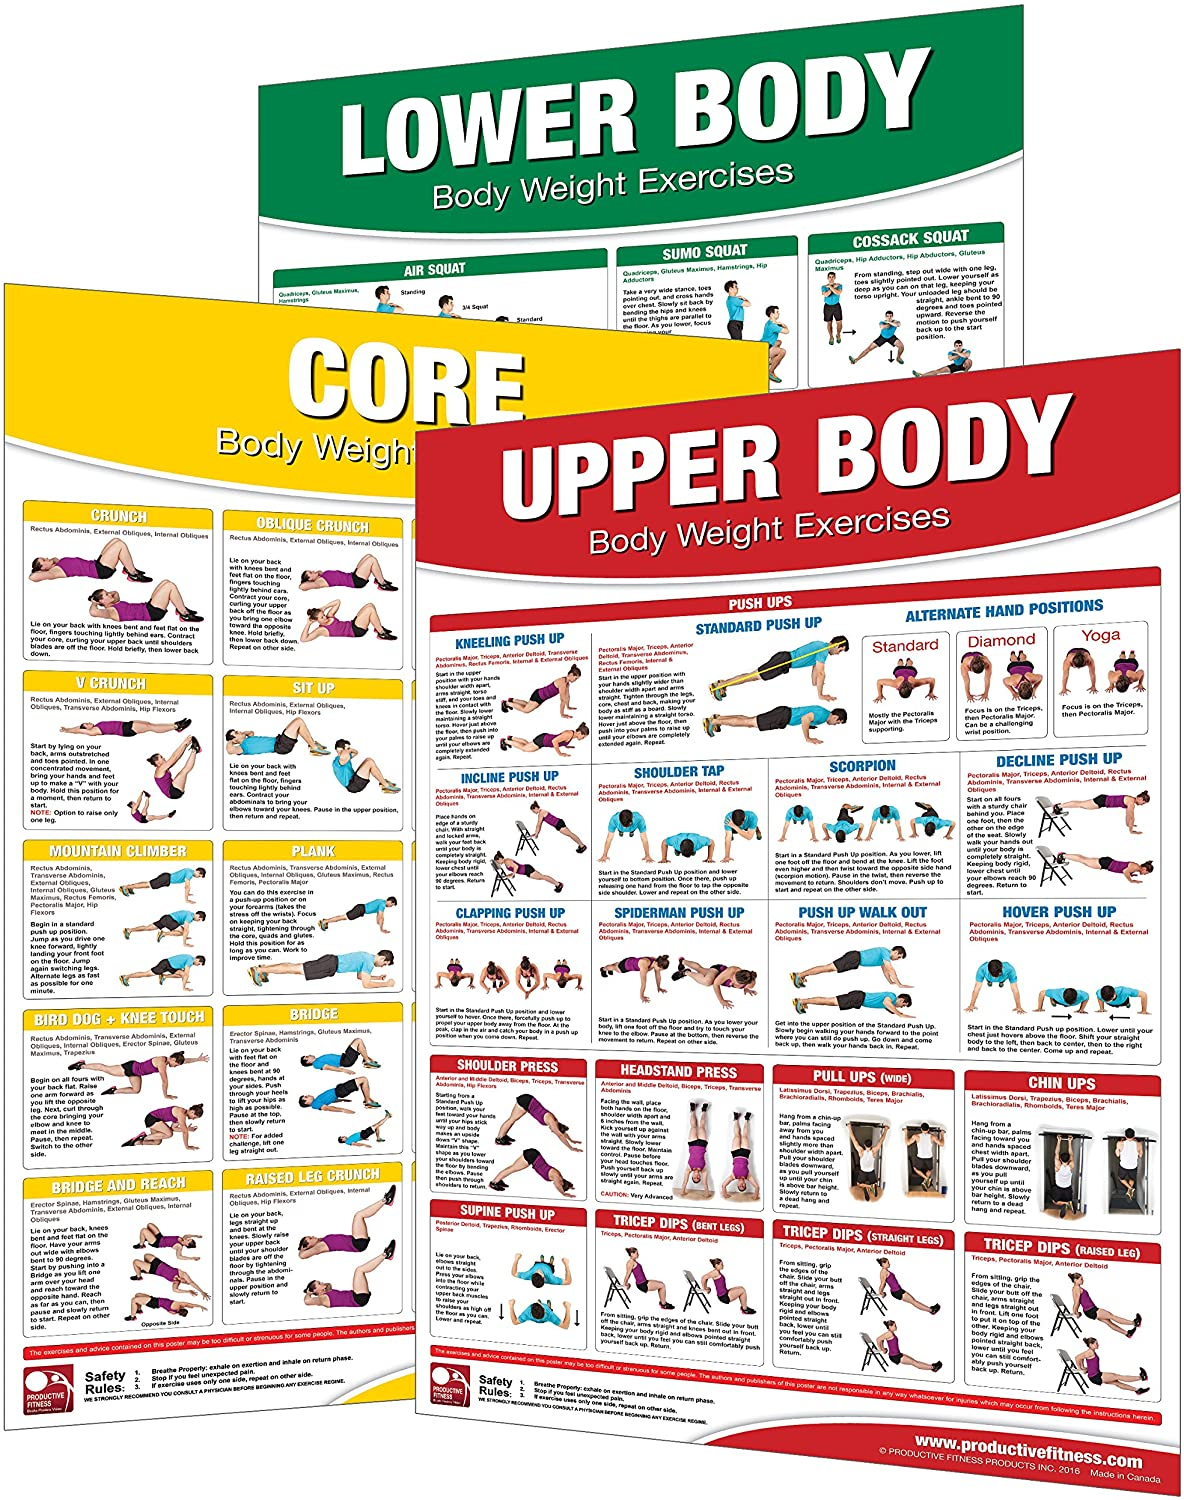 Laminated Bodyweight Workout Set of Posters/Charts - Bodyweight Training - Created by University Accredited Fitness Experts - Bodyweight Exercises - ... Chest Workout - Bodyweight Leg Work